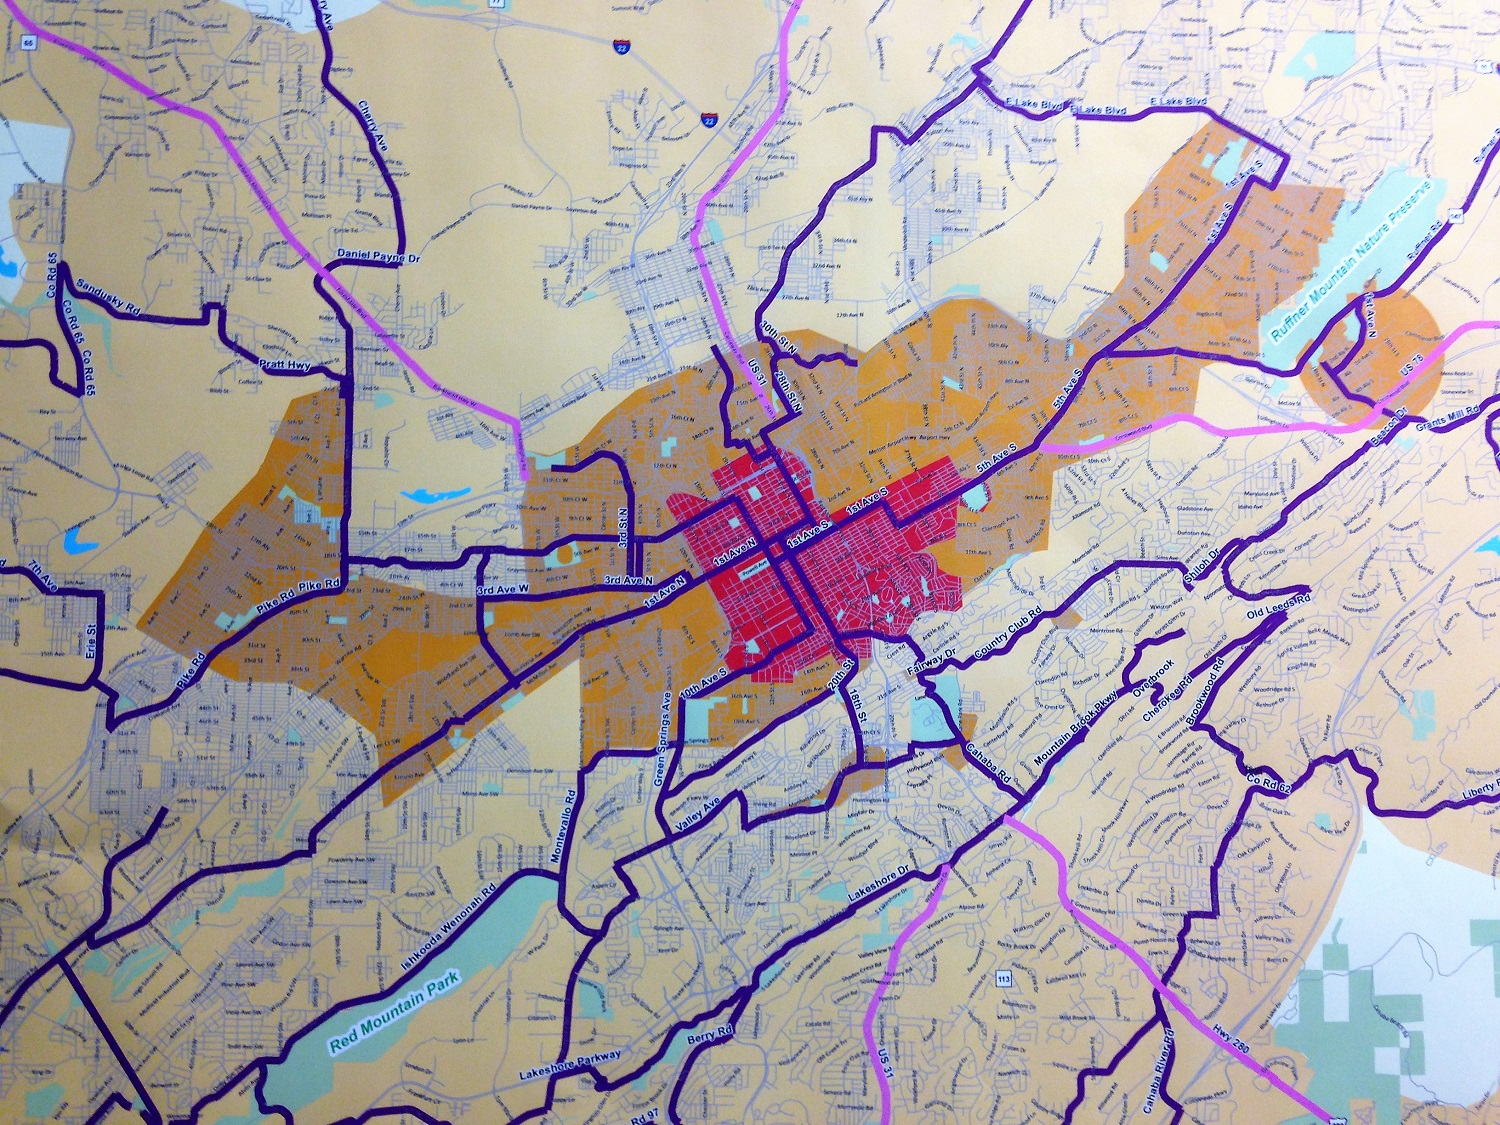 A map created for the B Active plan shows the Birmingham area broken down into zones. (contributed)